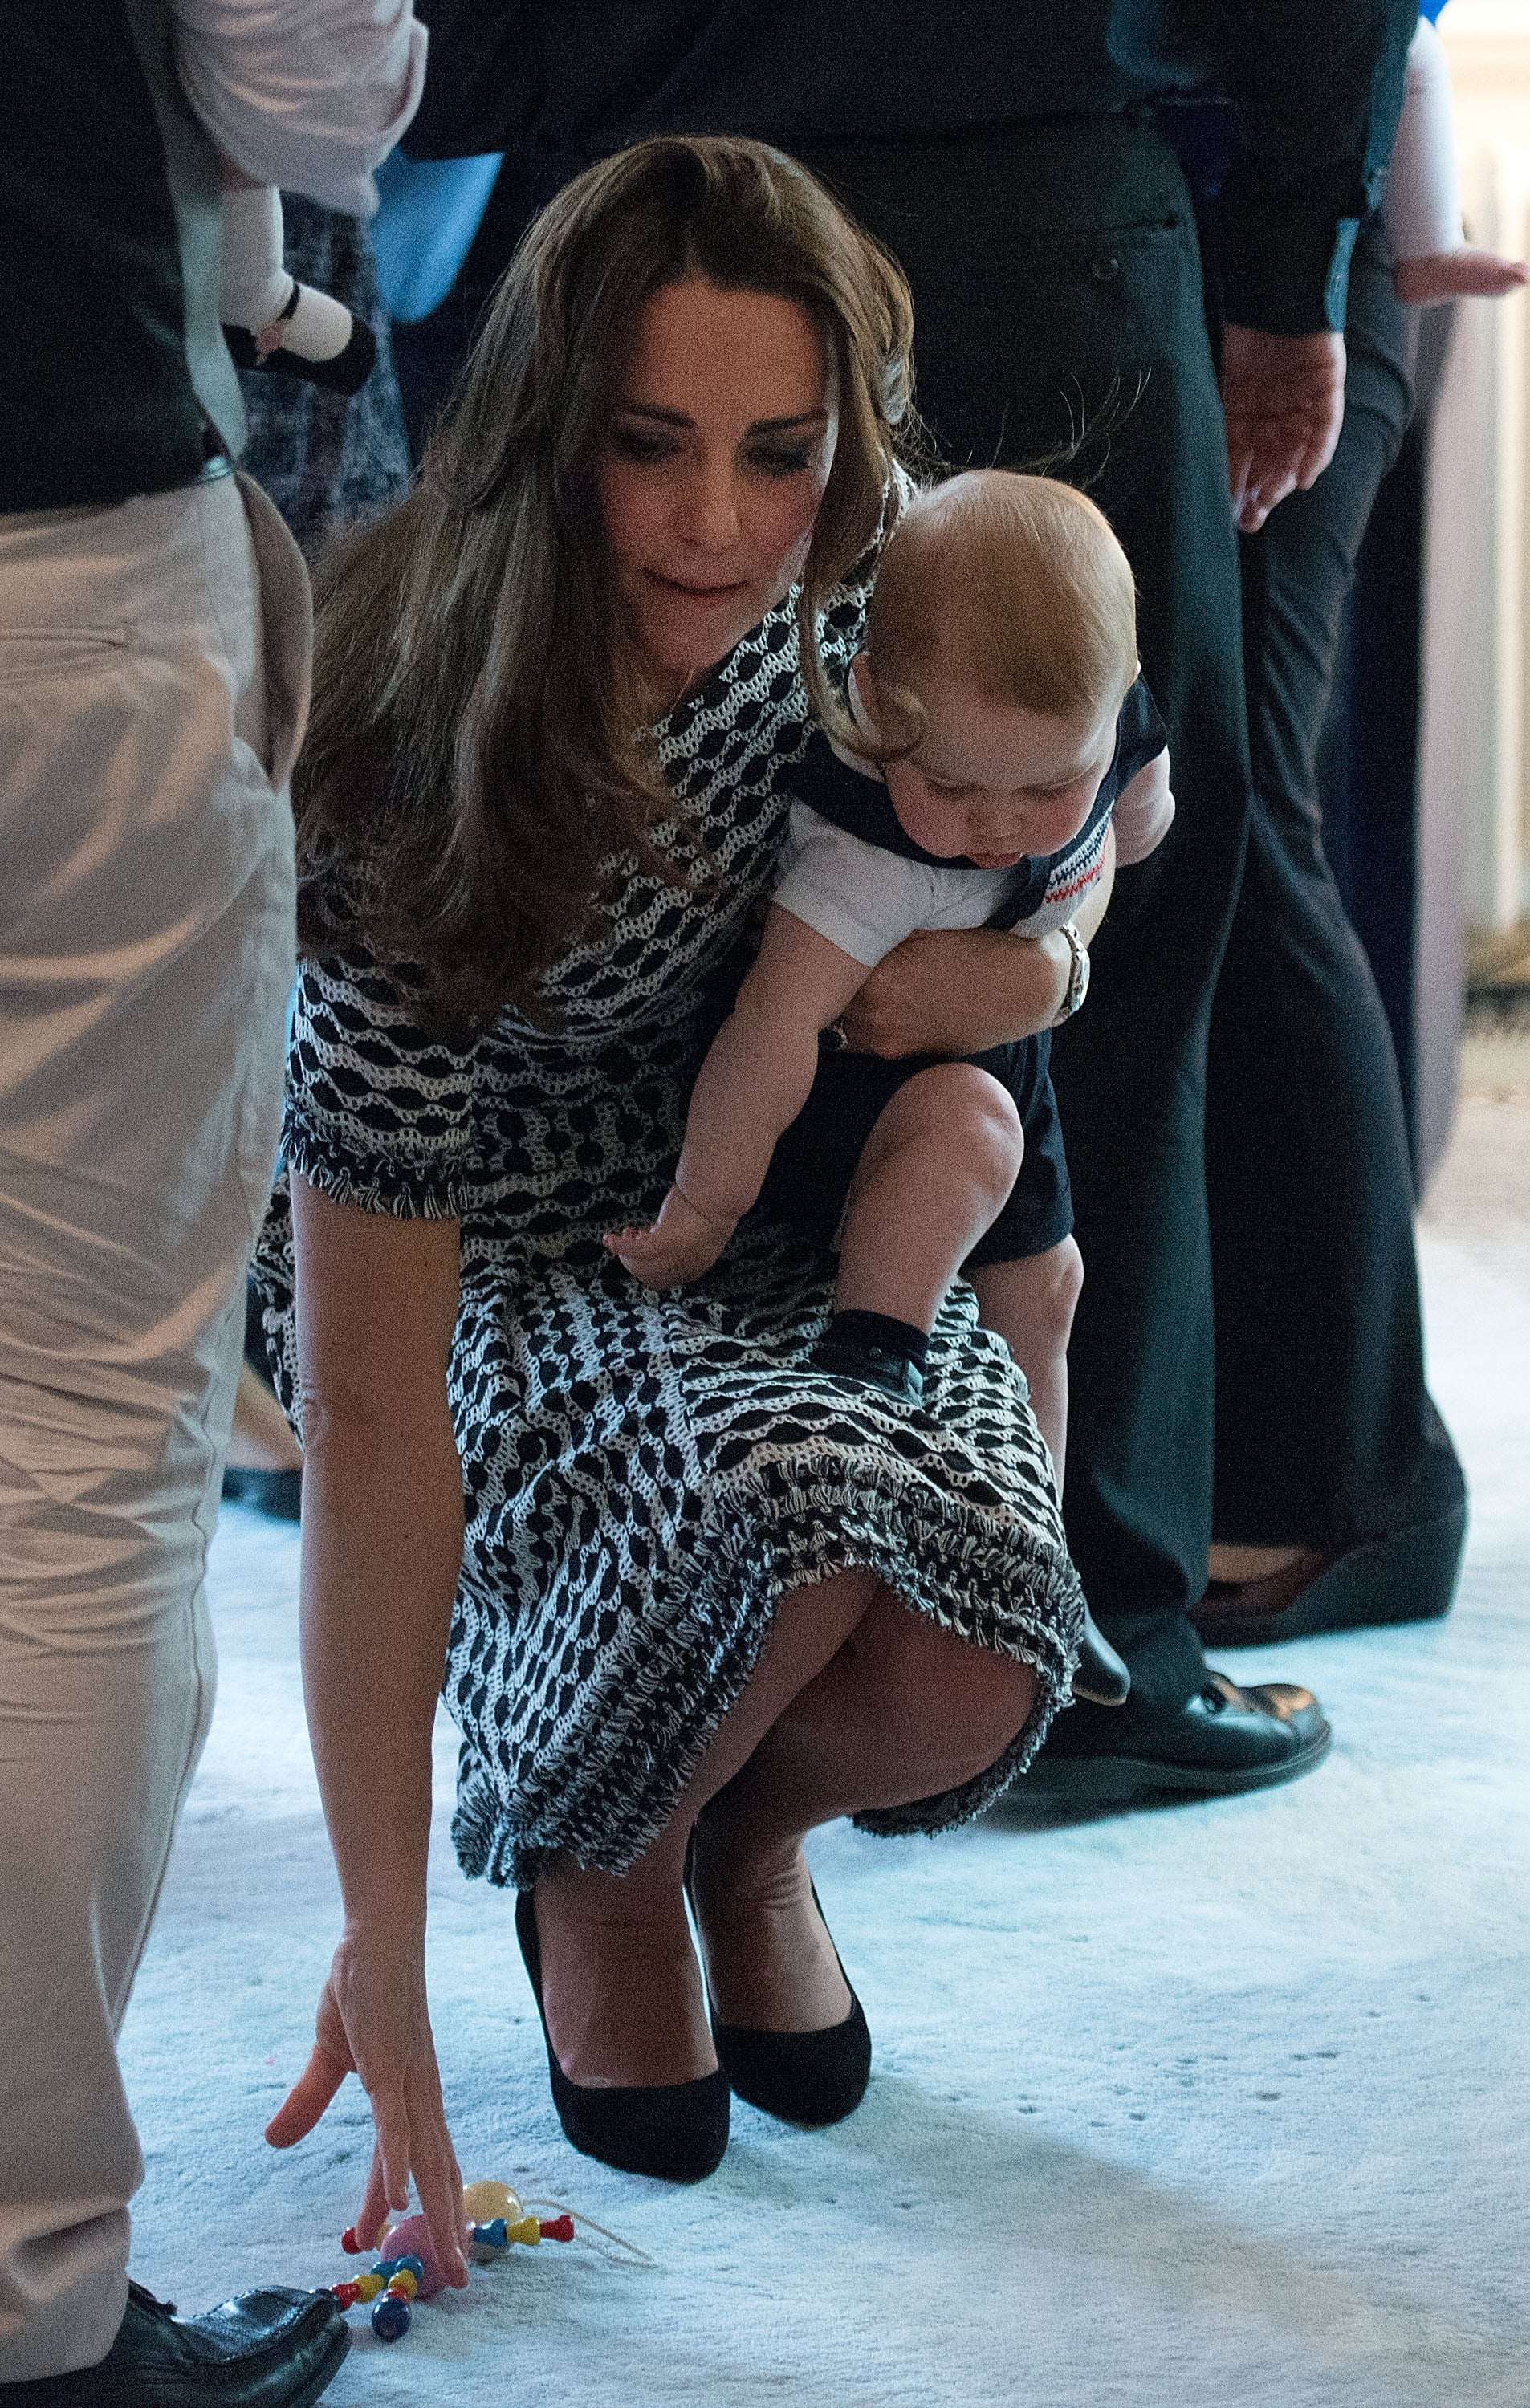 Even Kate picks up after her son.